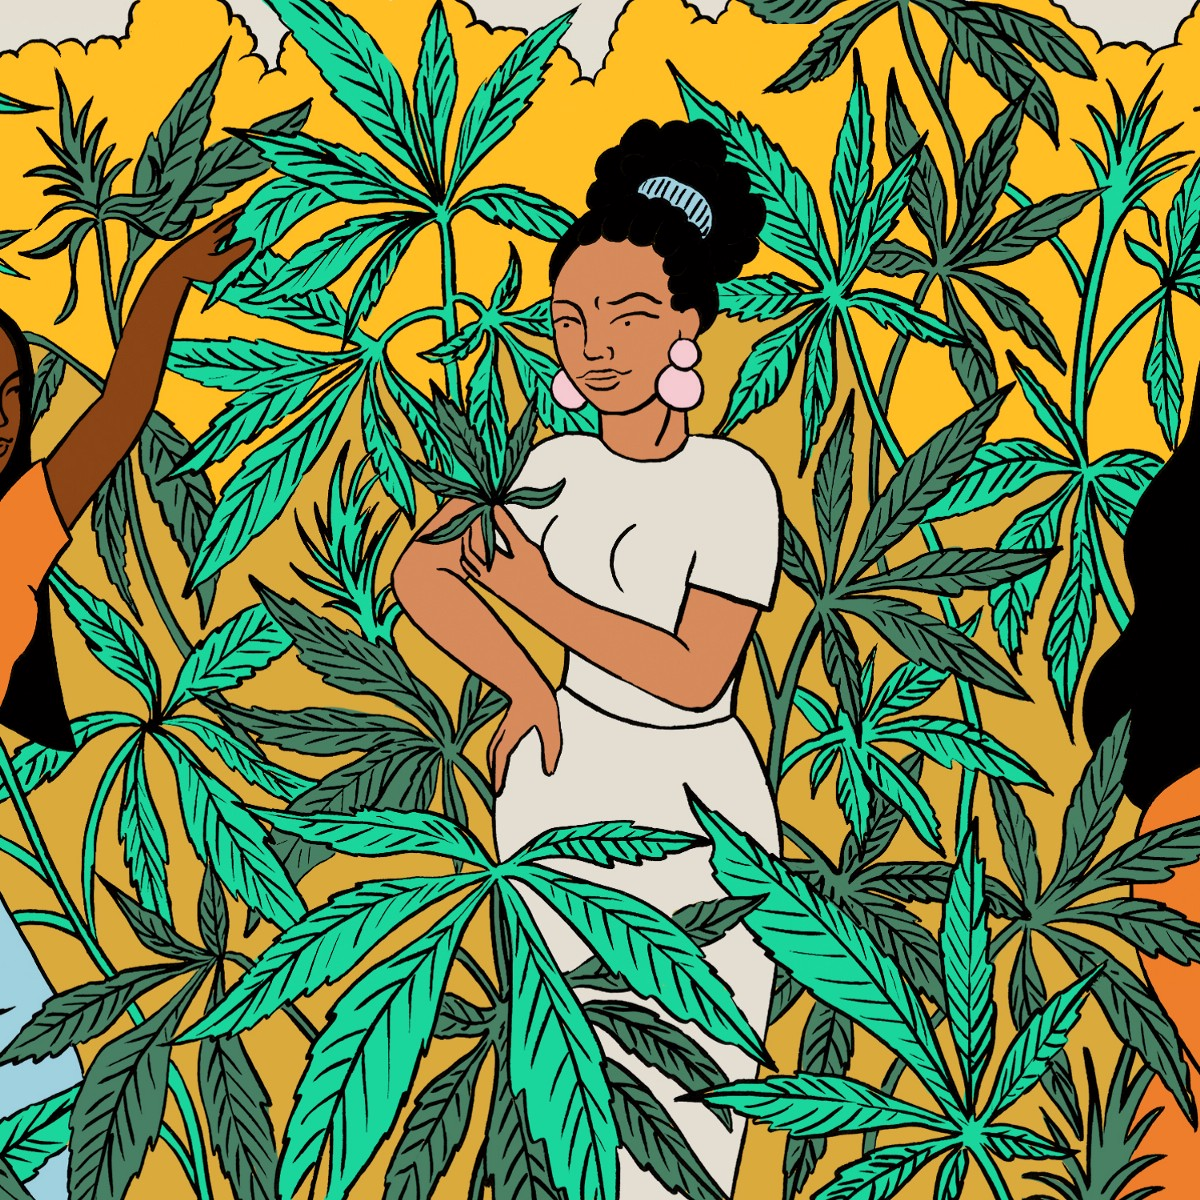 Some Women Are Using Weed to Have Better Sex